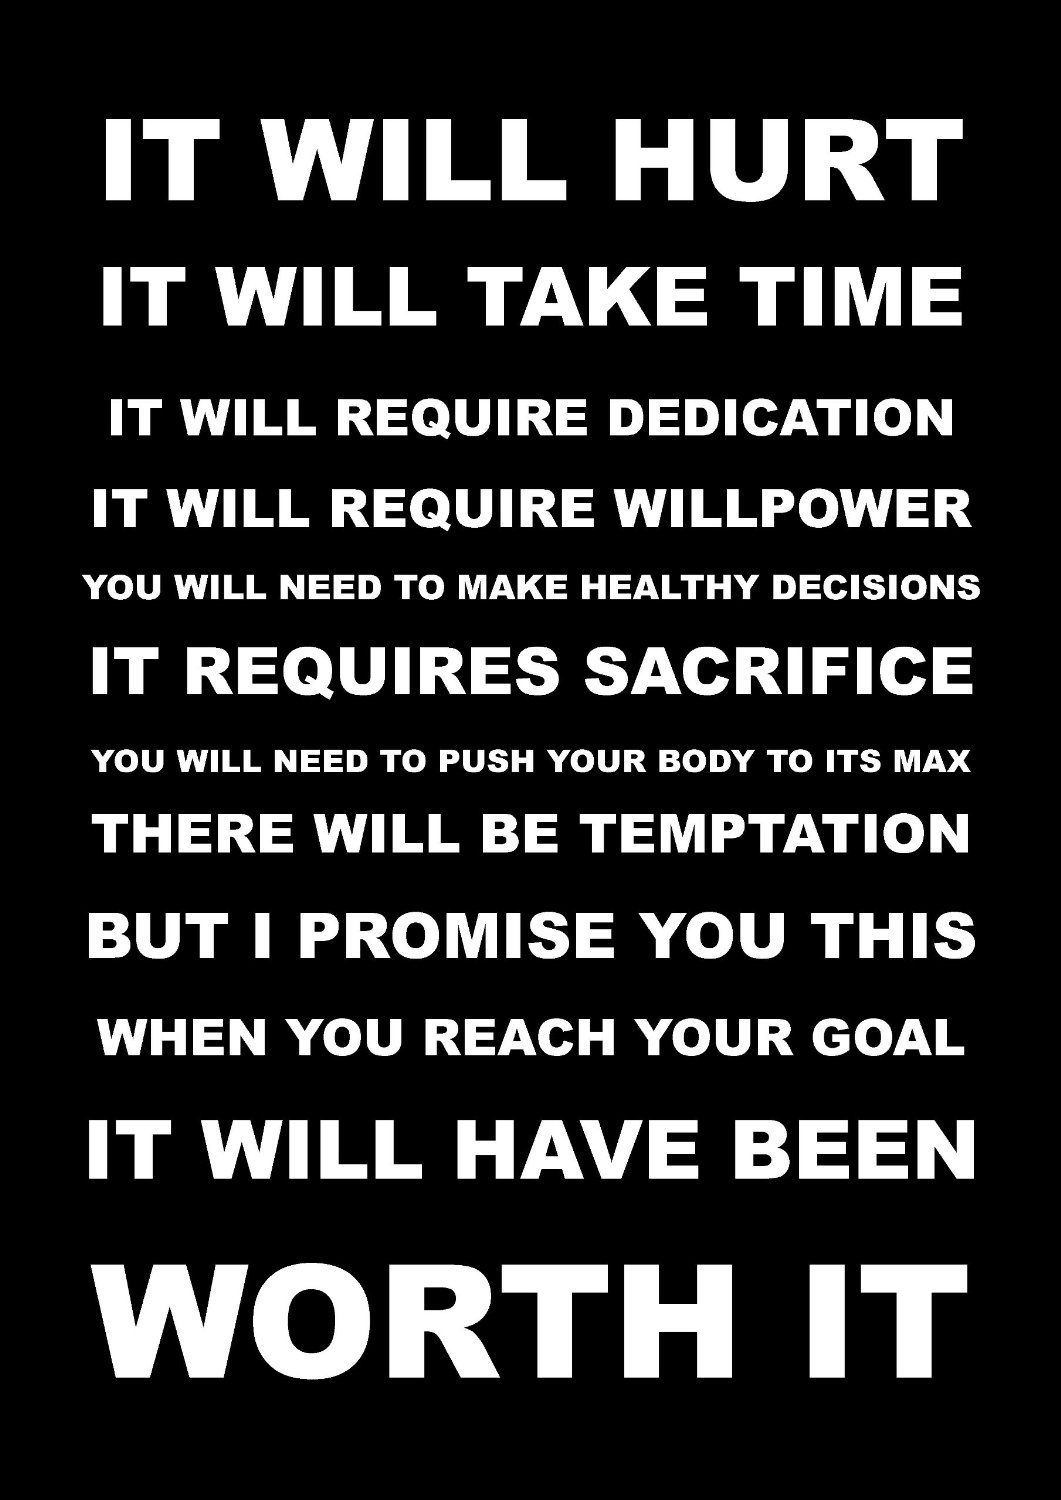 Inspirational Motivational Quote Sign Poster Print Picture It Will Hurt Spo Motivational Quotes For Working Out Inspirational Quotes Motivation Athlete Quotes